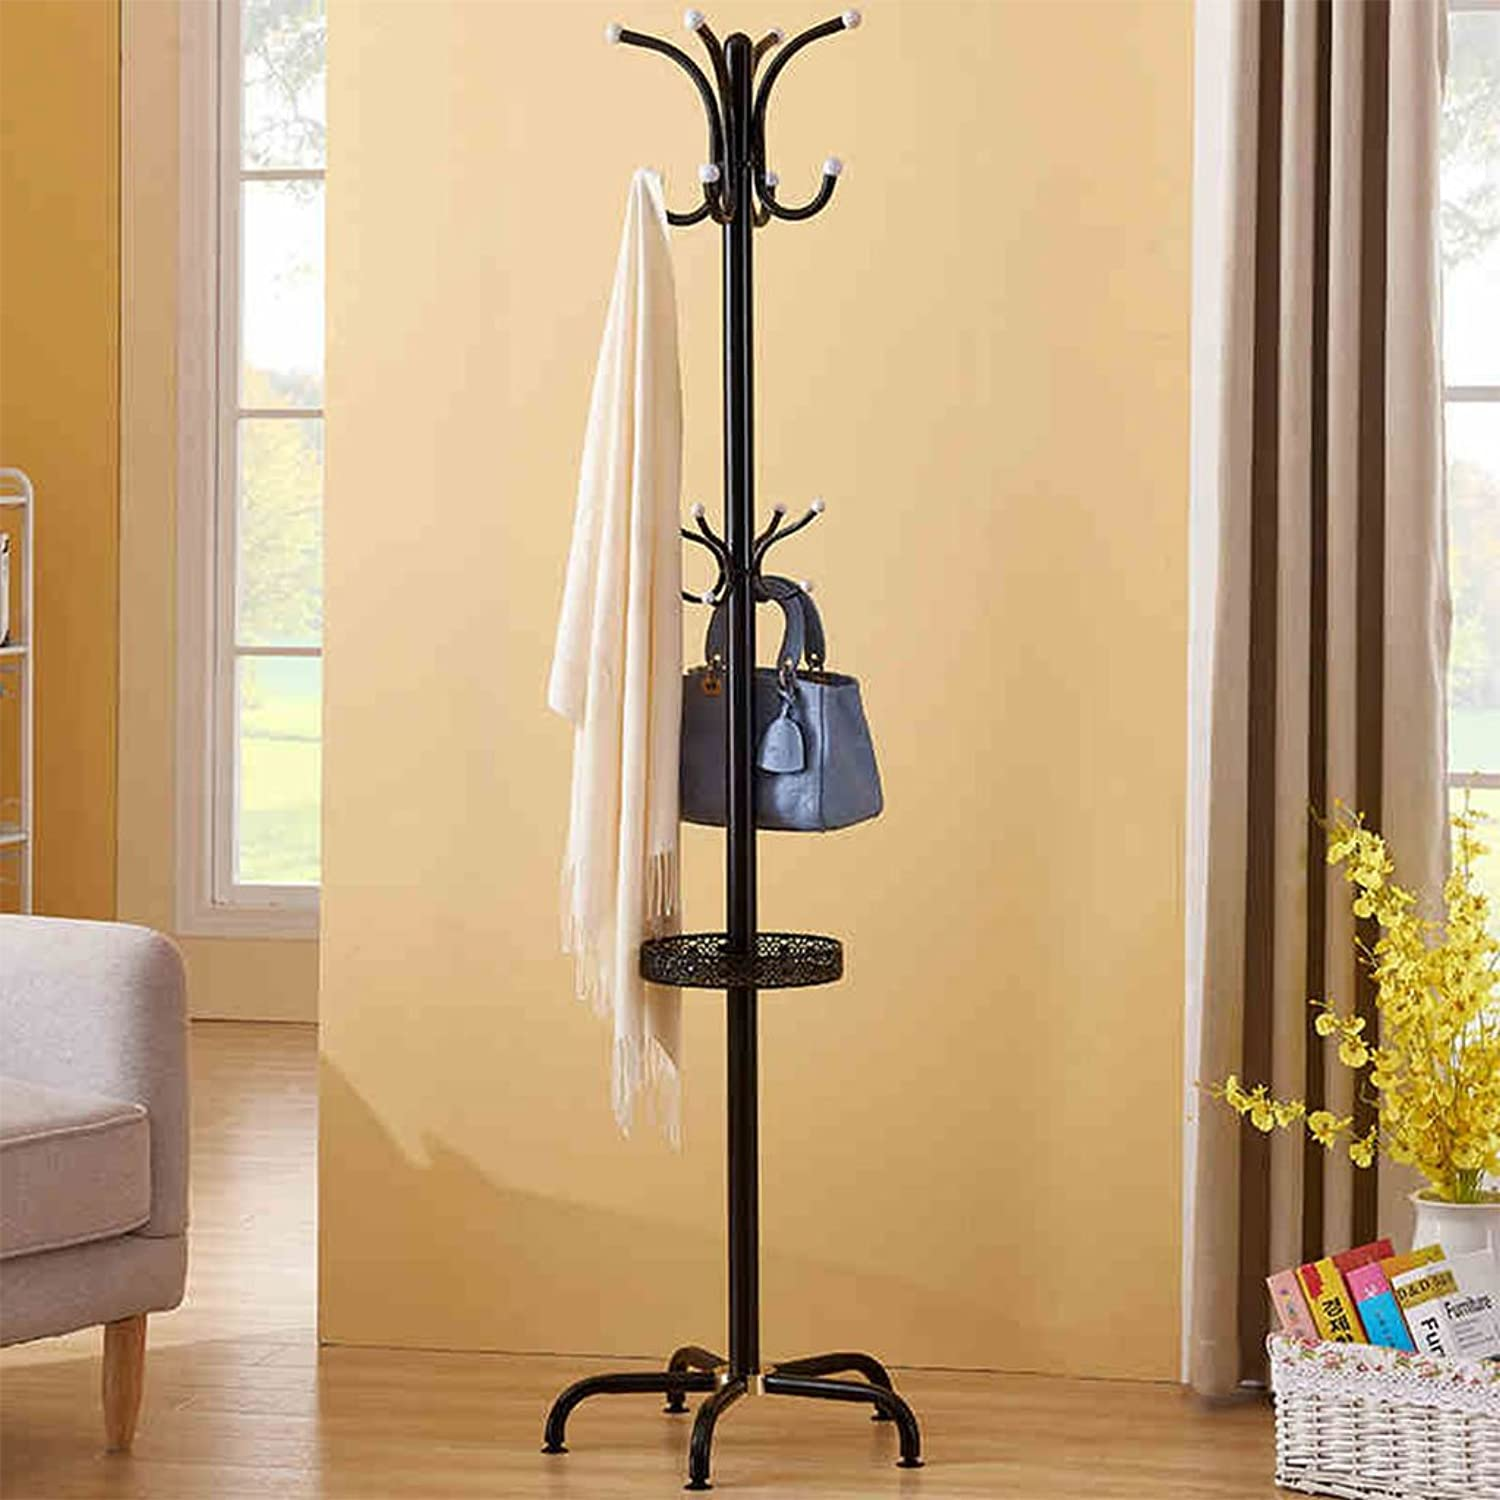 CL Coat Rack Floor Hanger Floor Bedroom Coat Hanger Simple Modern Interior Clothes Rack Black High 180cm Coat Rack